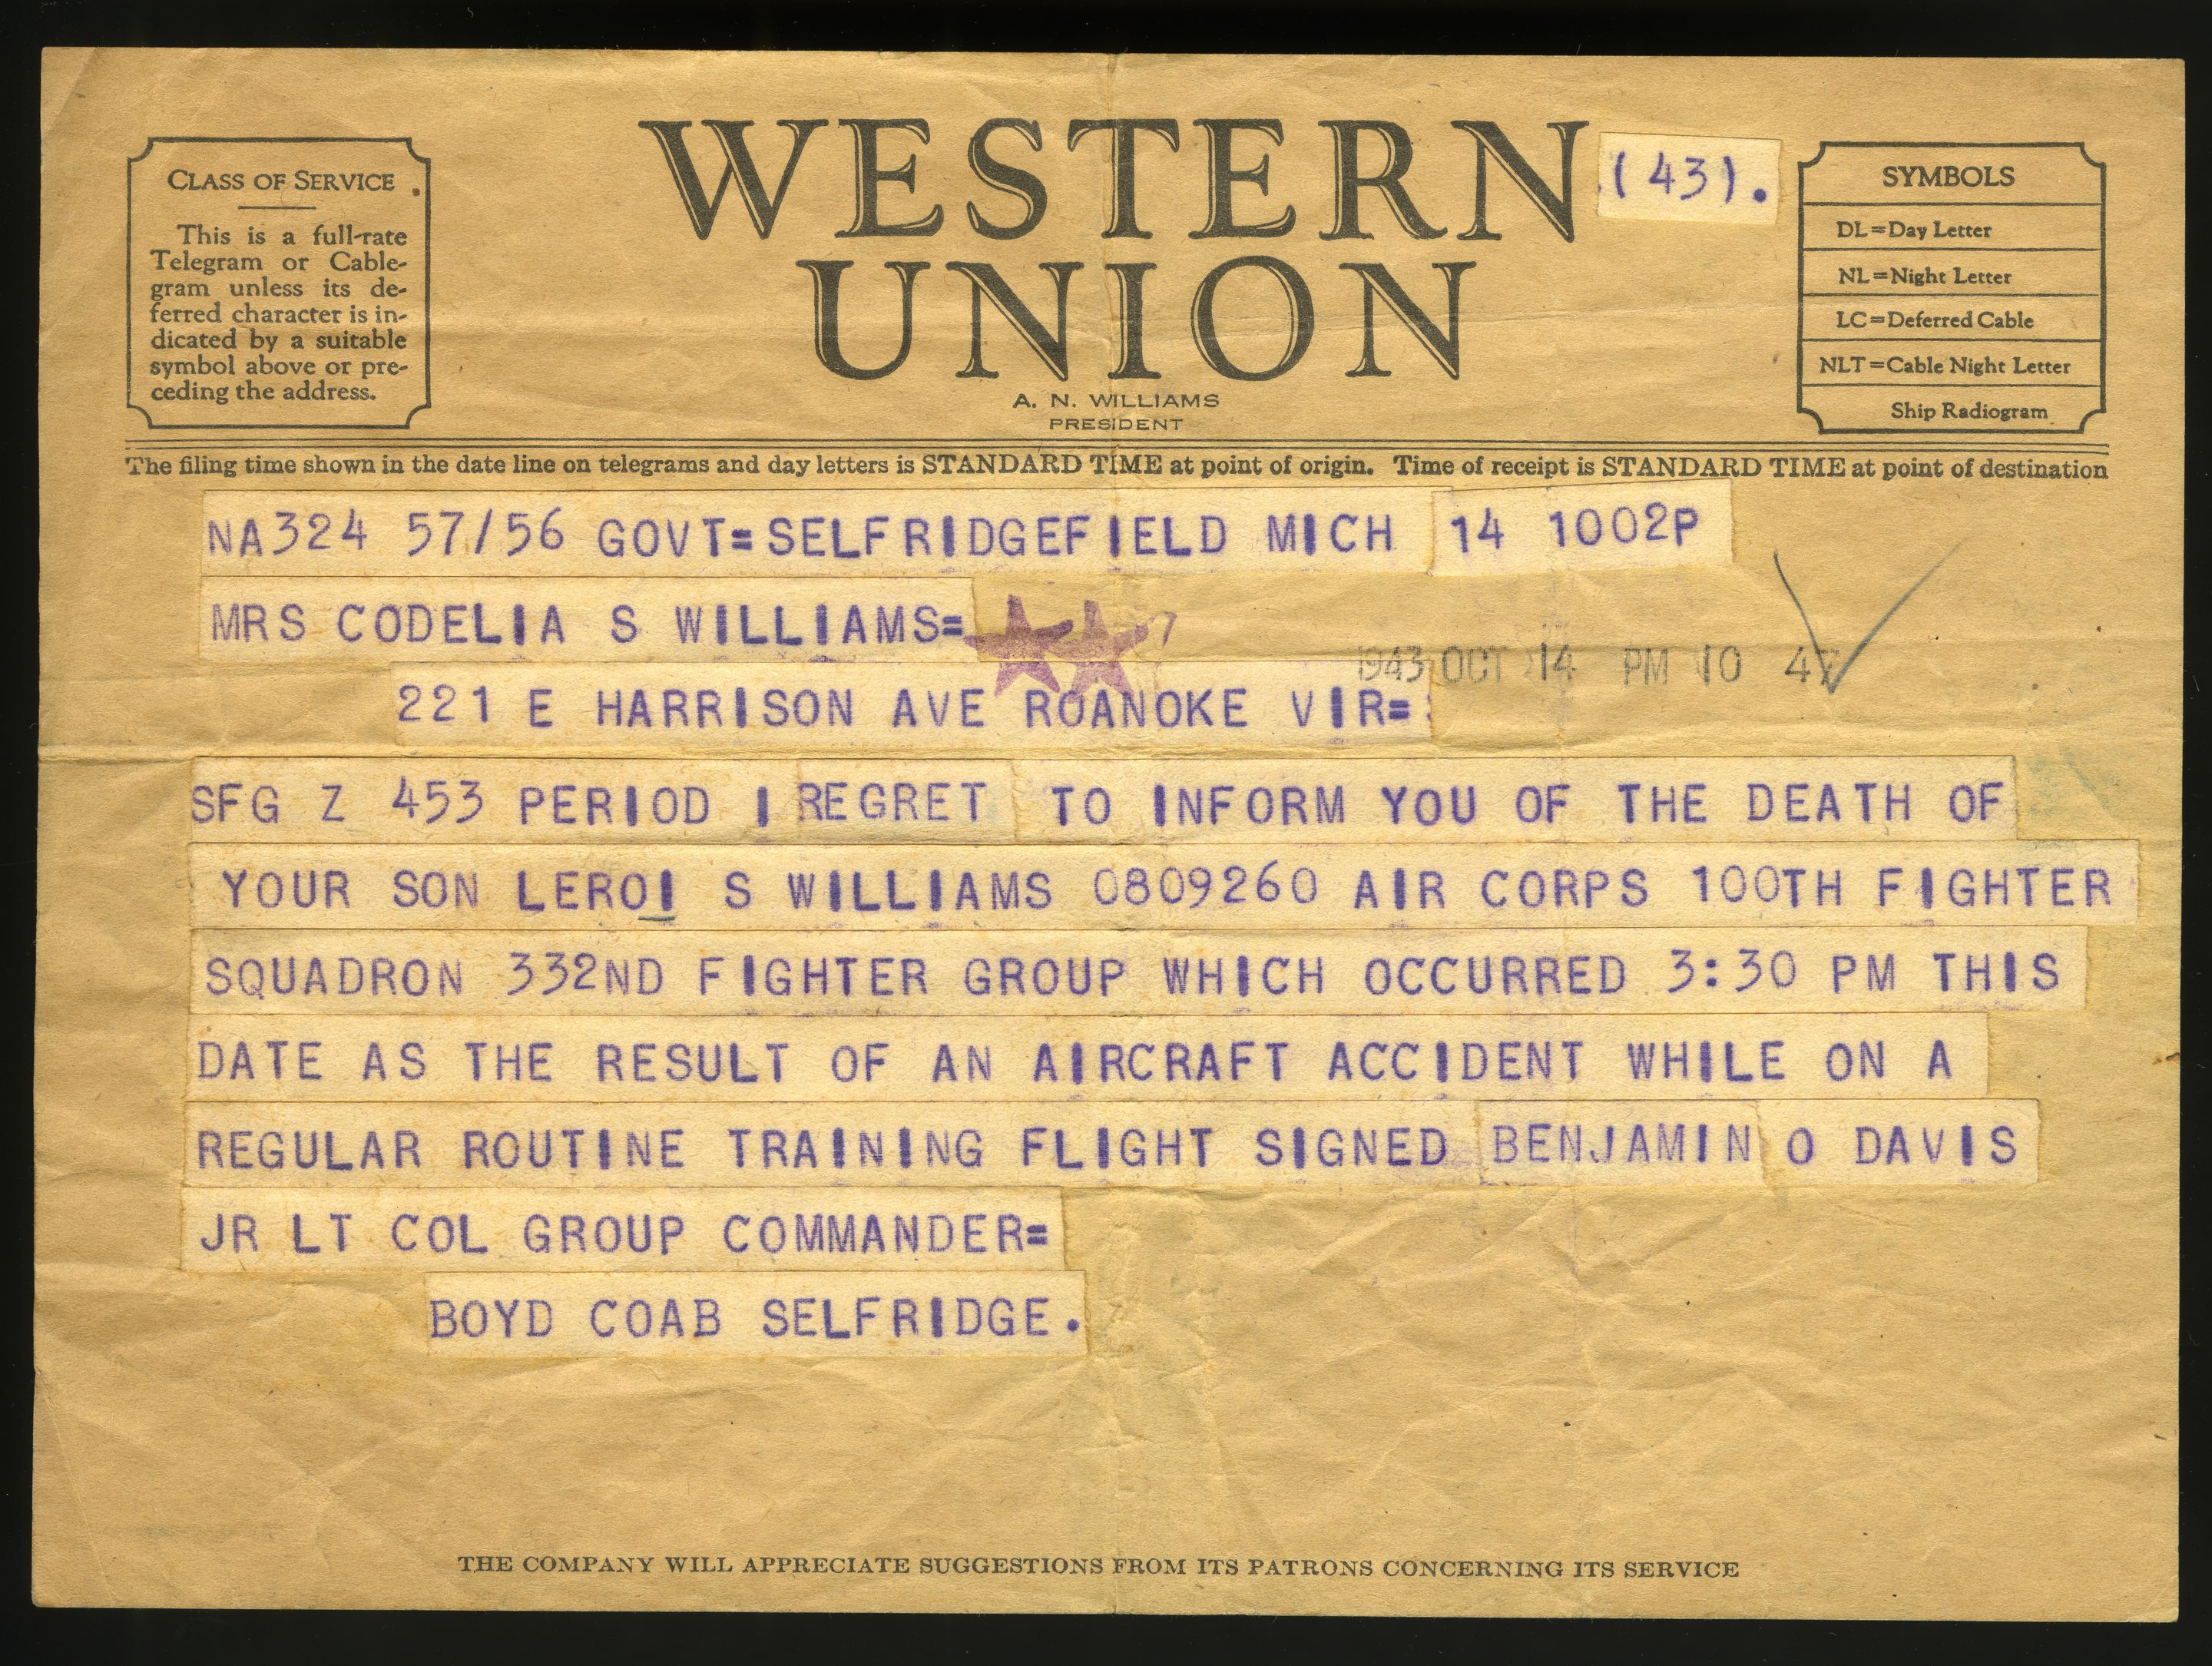 A telegram informs LeRoi S. Williams's mother of his passing in 1943.